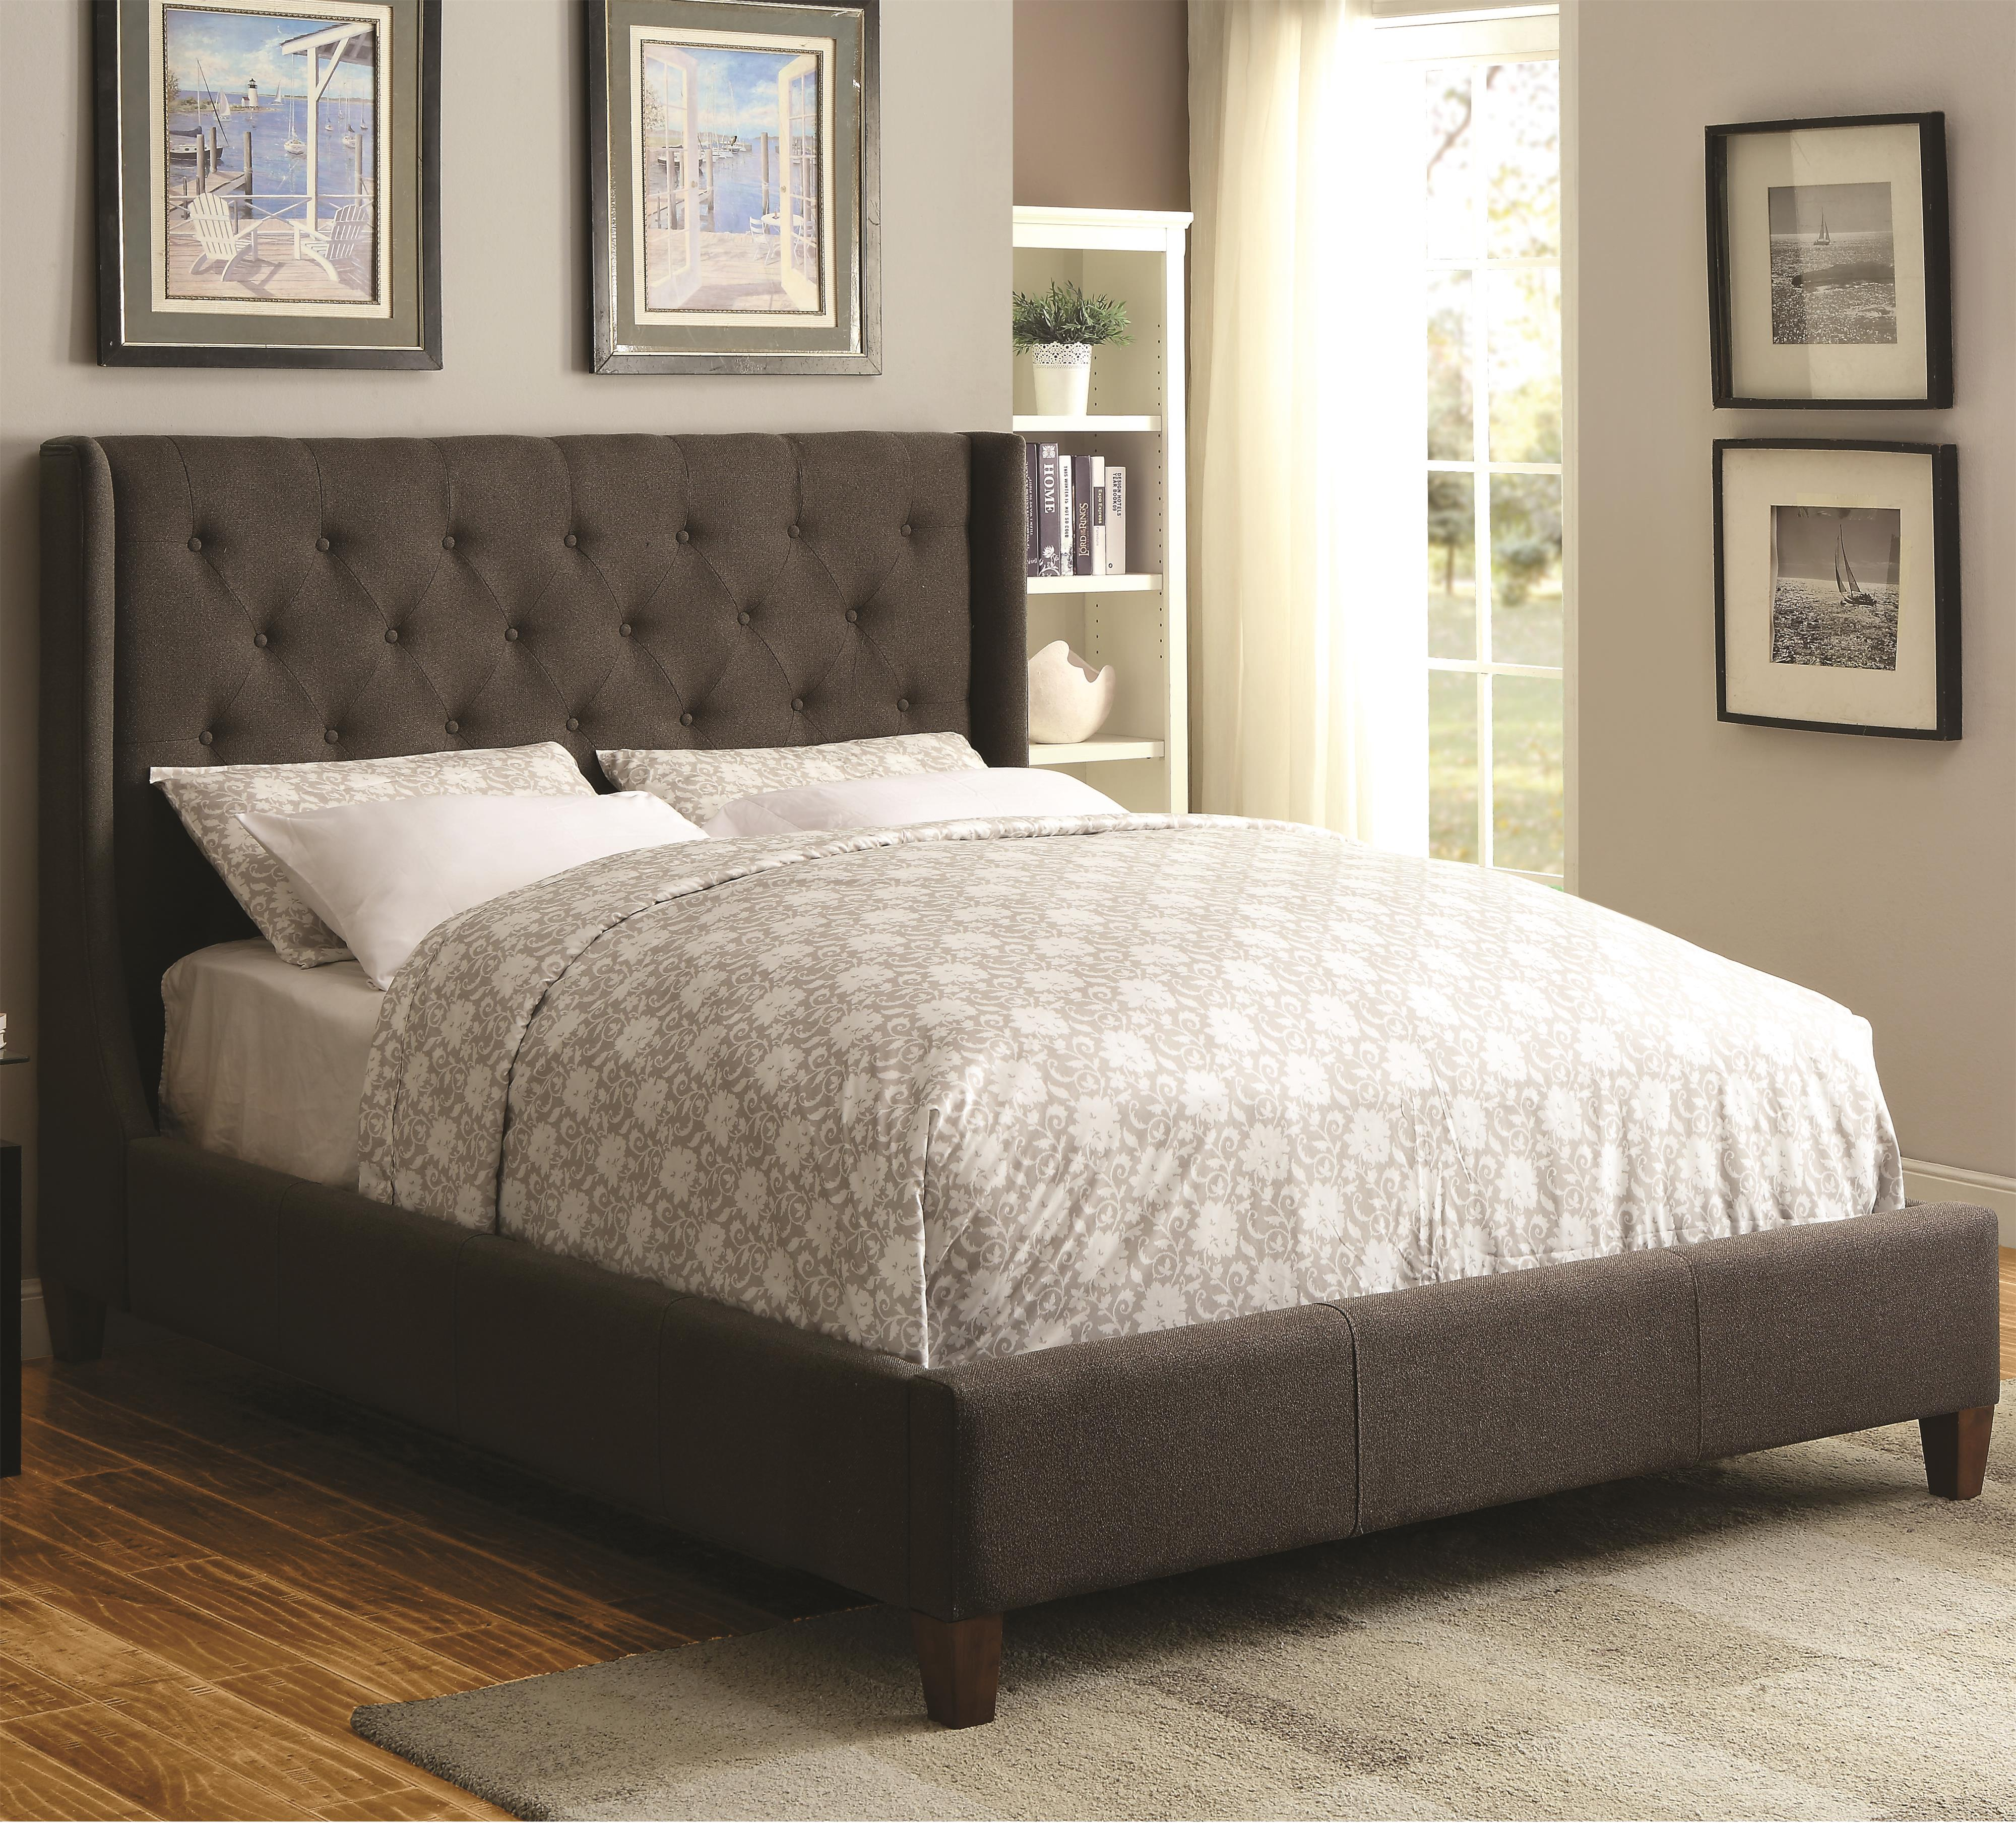 Coaster Upholstered Beds 300453KE Upholstered King Bed with Tall ...